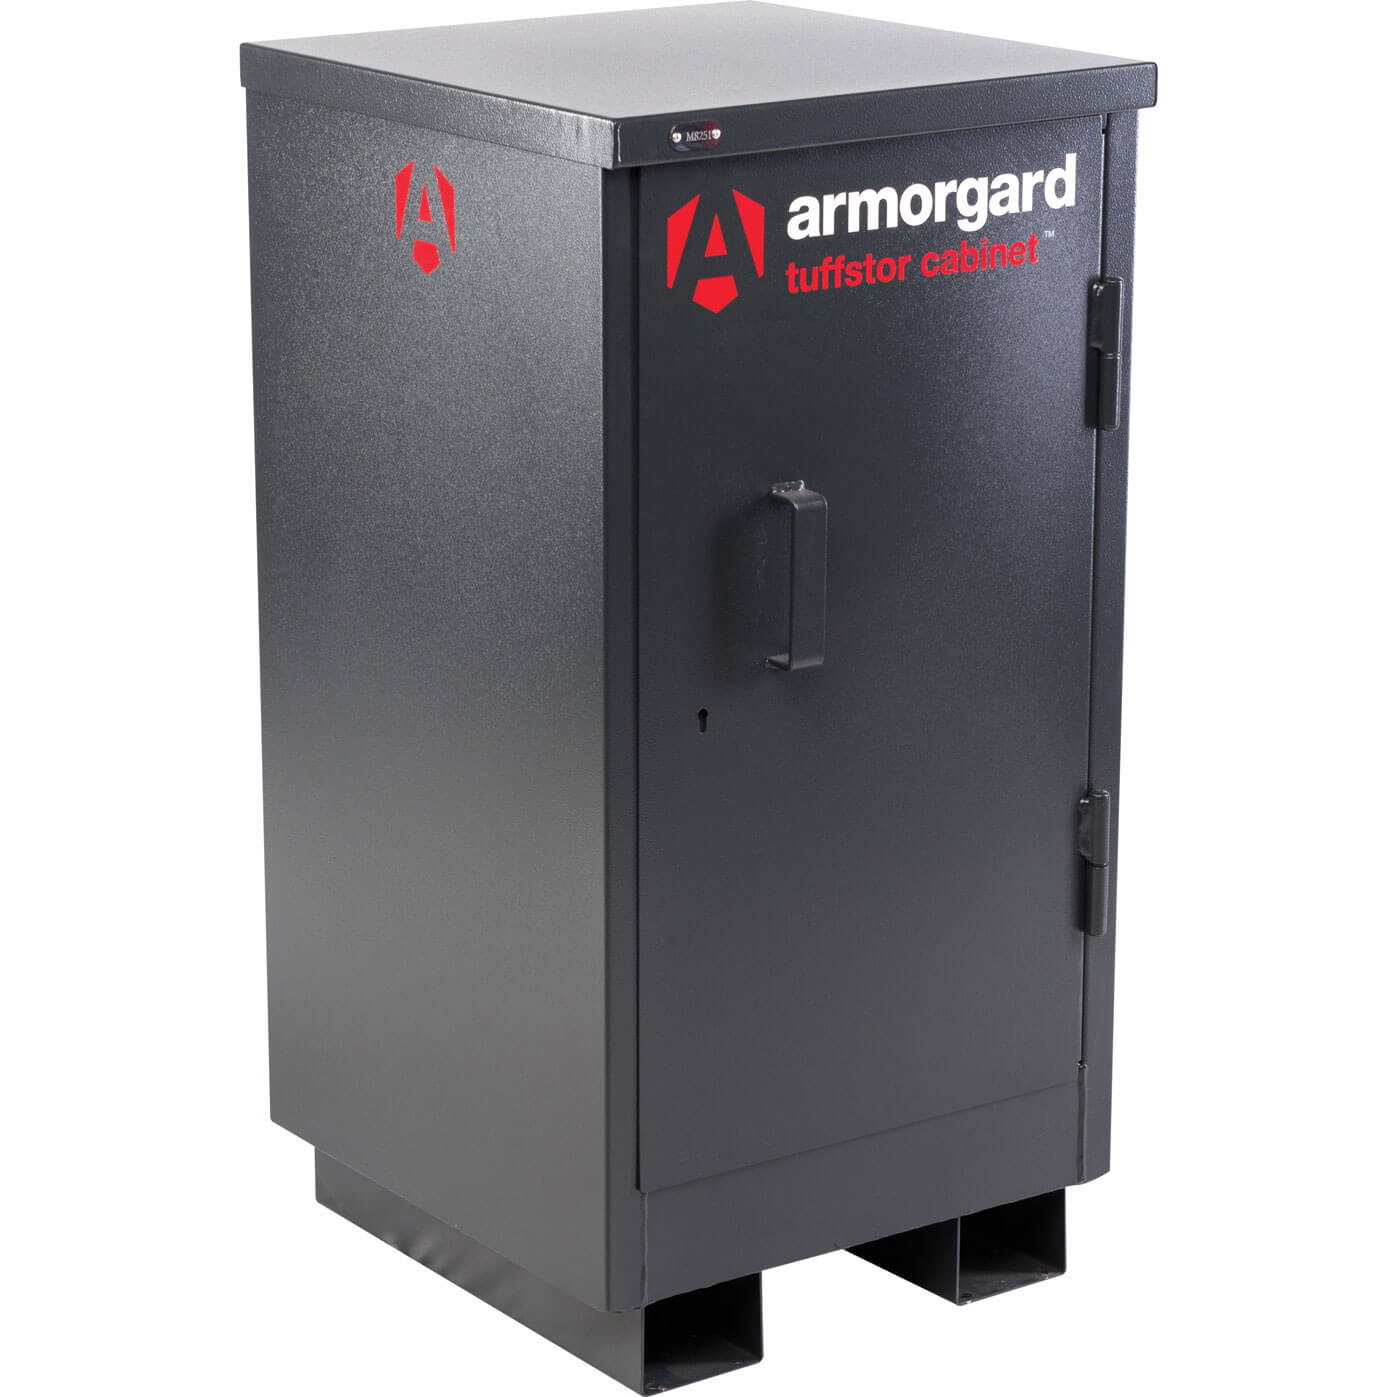 Armorgard Tuffstor Vehicle Security Cabinet 50cm x 50cm x 90cm